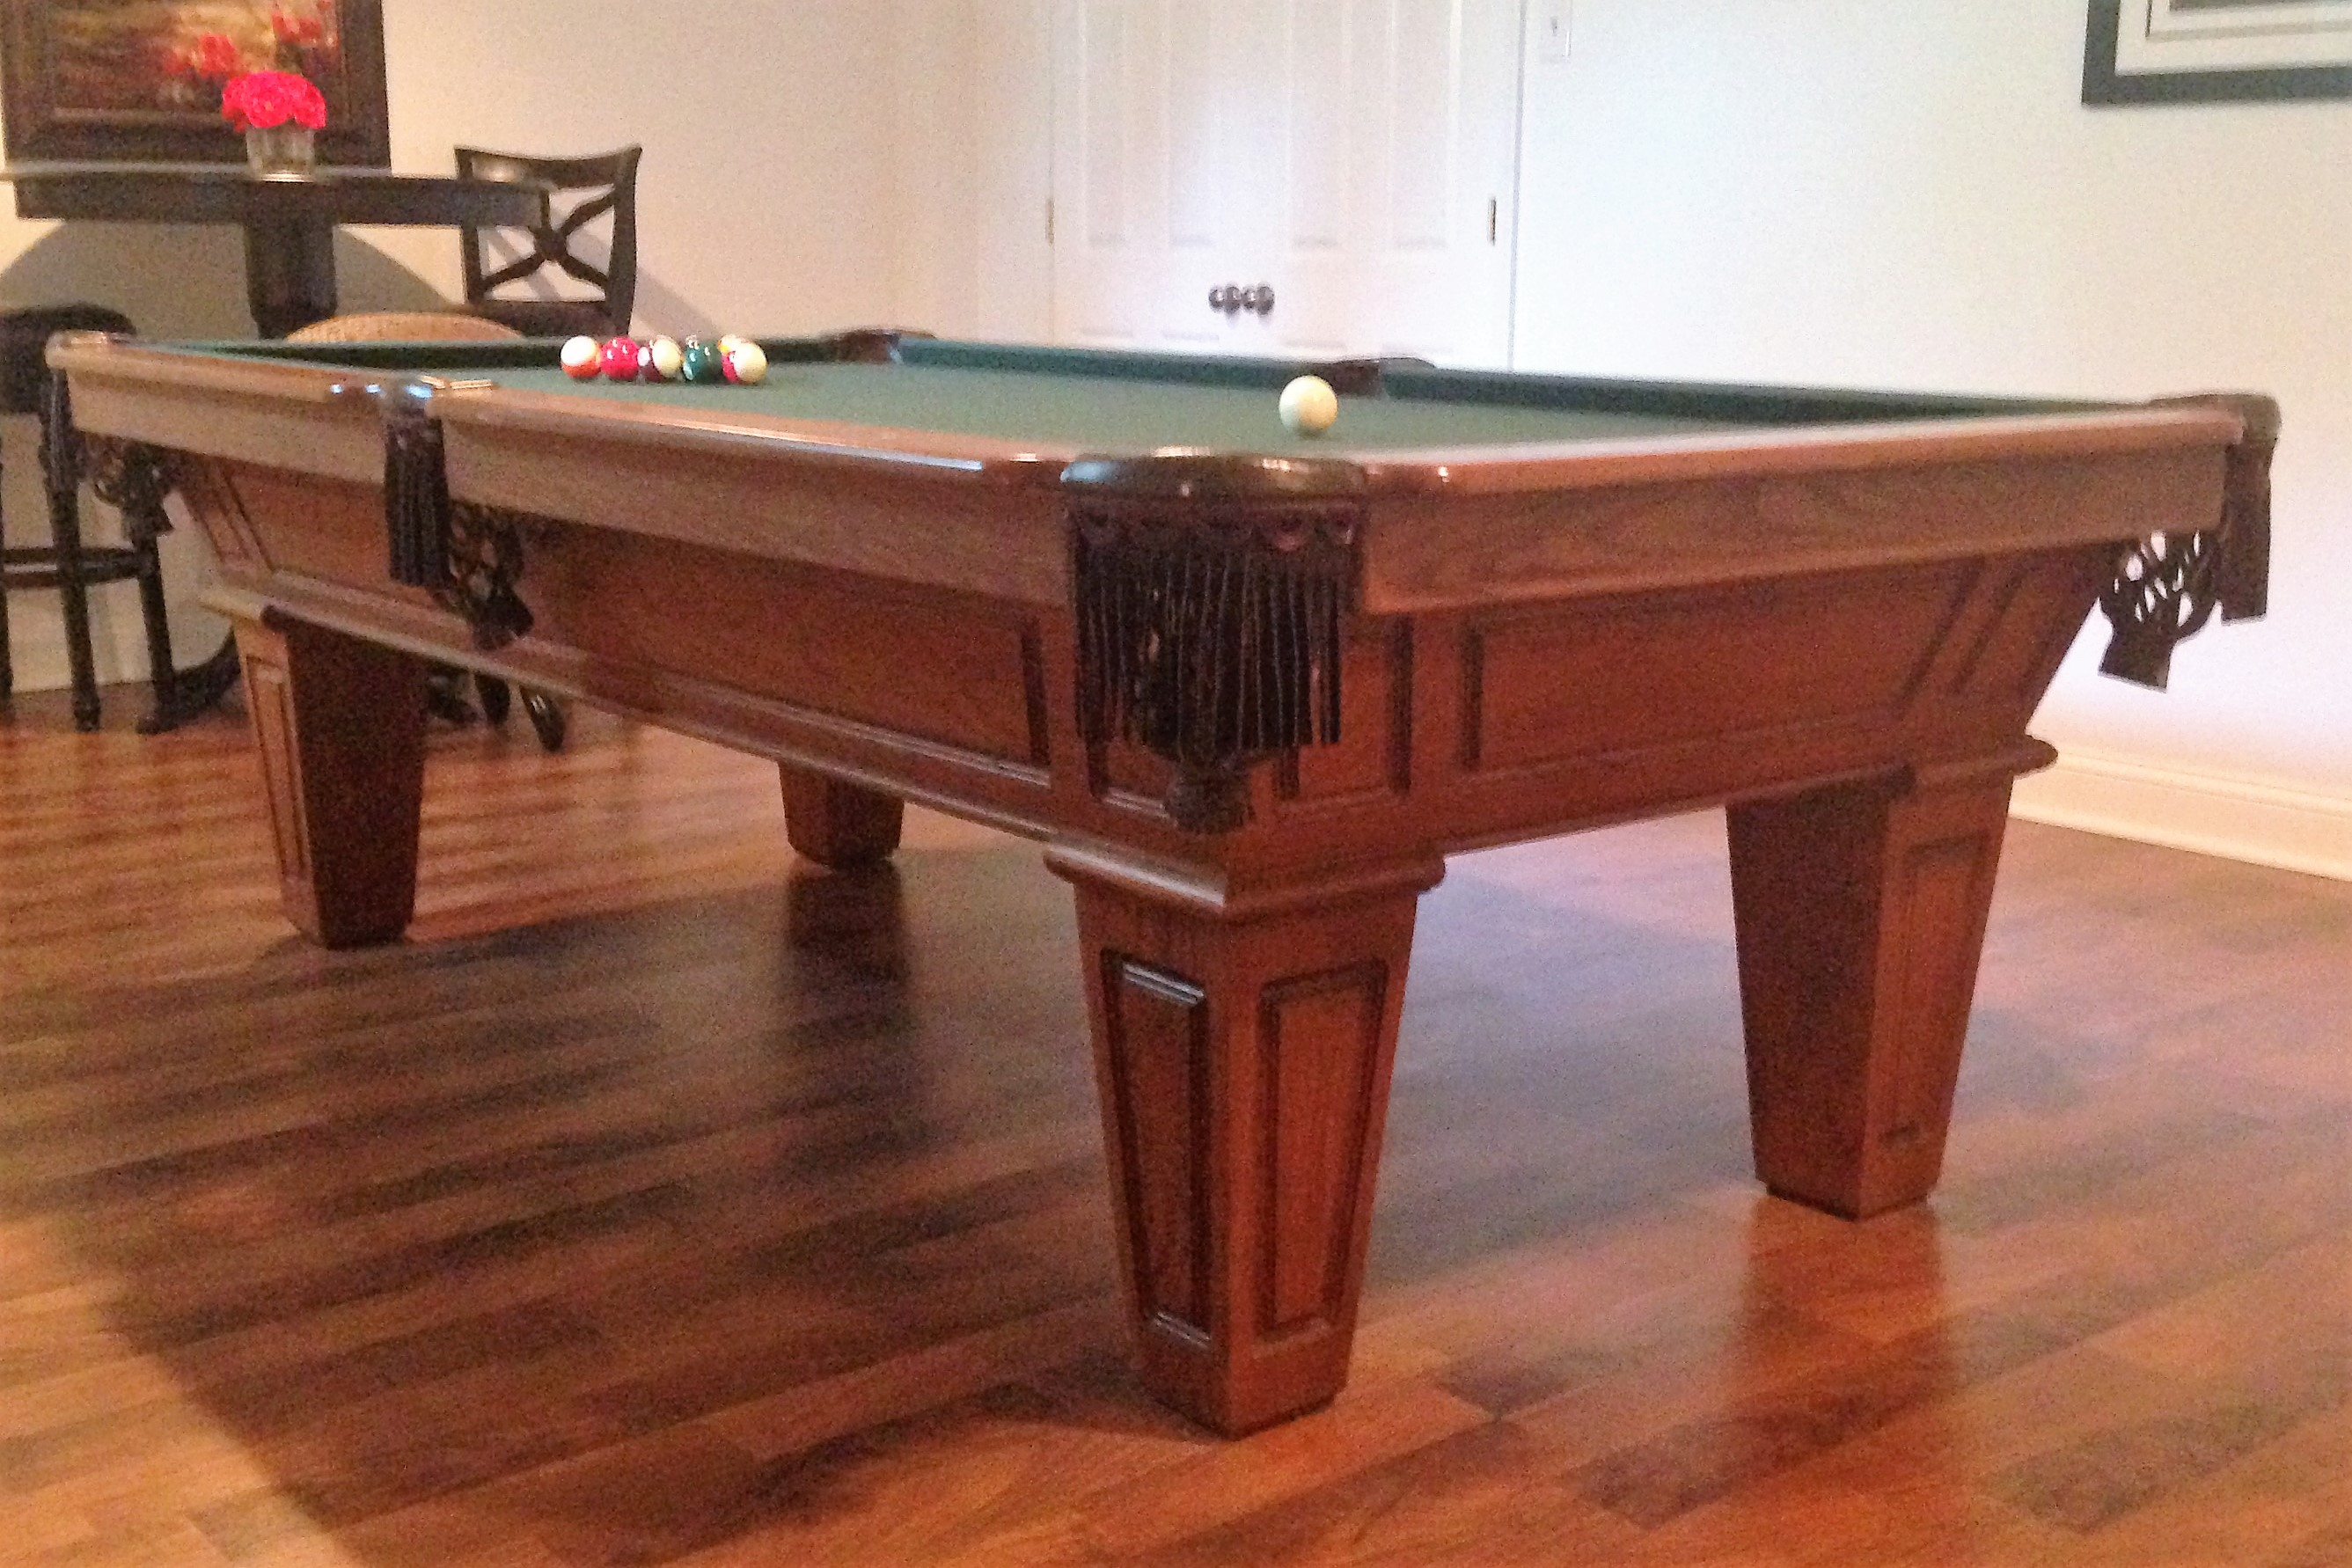 8 pool table the fu li jing gong billiards manufacture - How much does a pool table cost ...